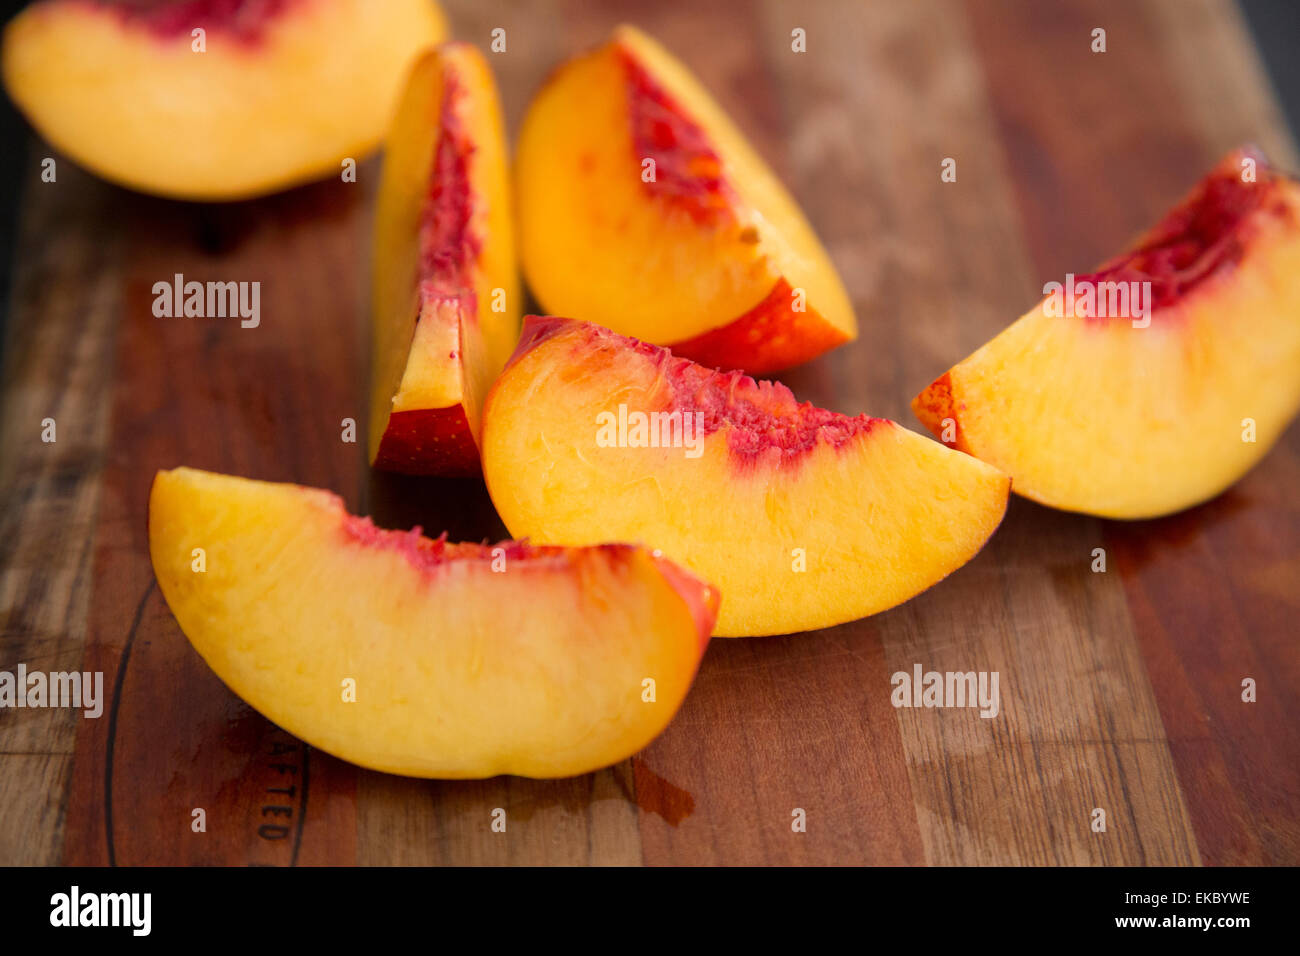 Peach slices on cutting board - Stock Image